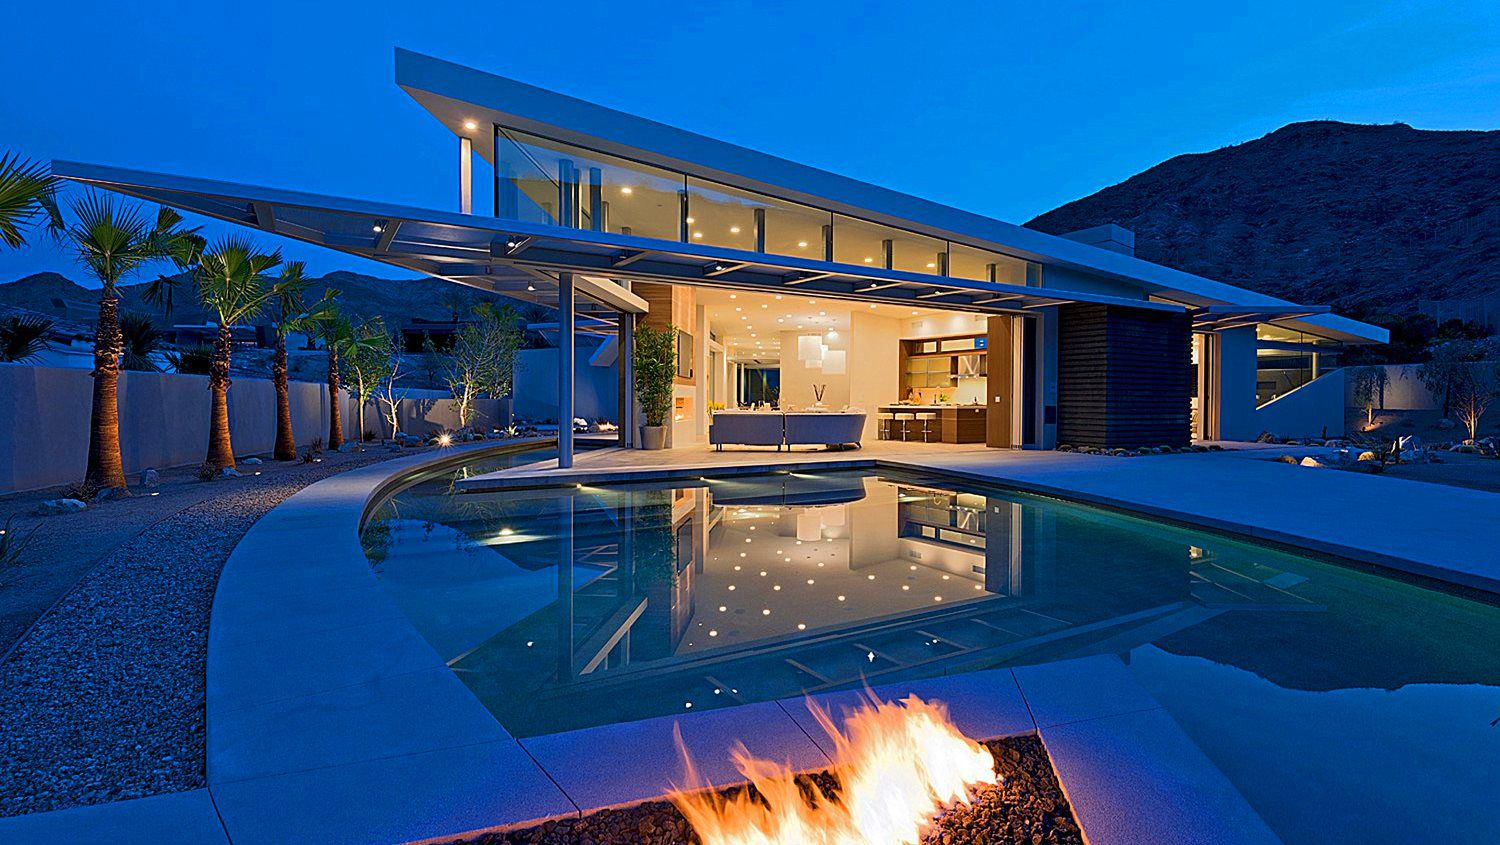 Edgy Modern Desert House in La Quinta, CA by Brian Foster Designs